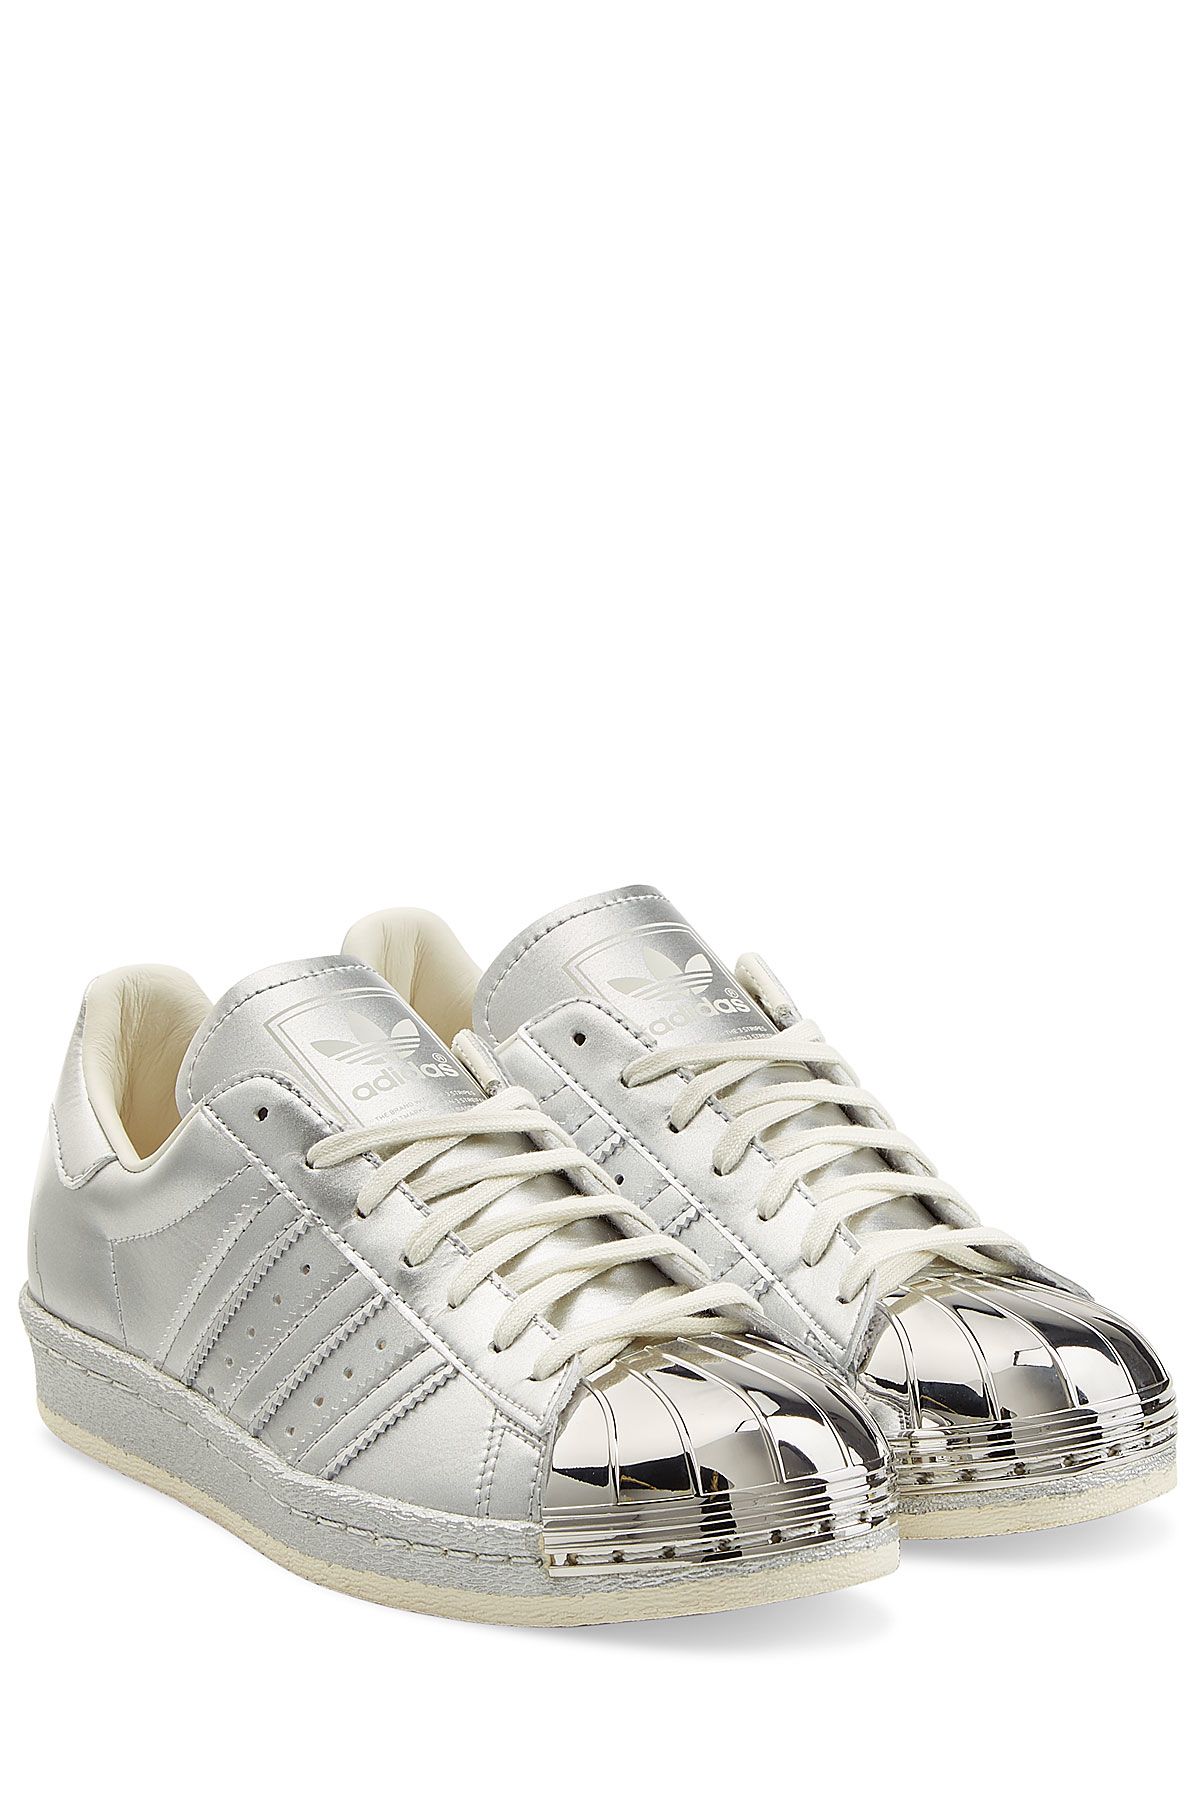 adidas Originals Superstar Foundation CF I White Pink Toddler Infant